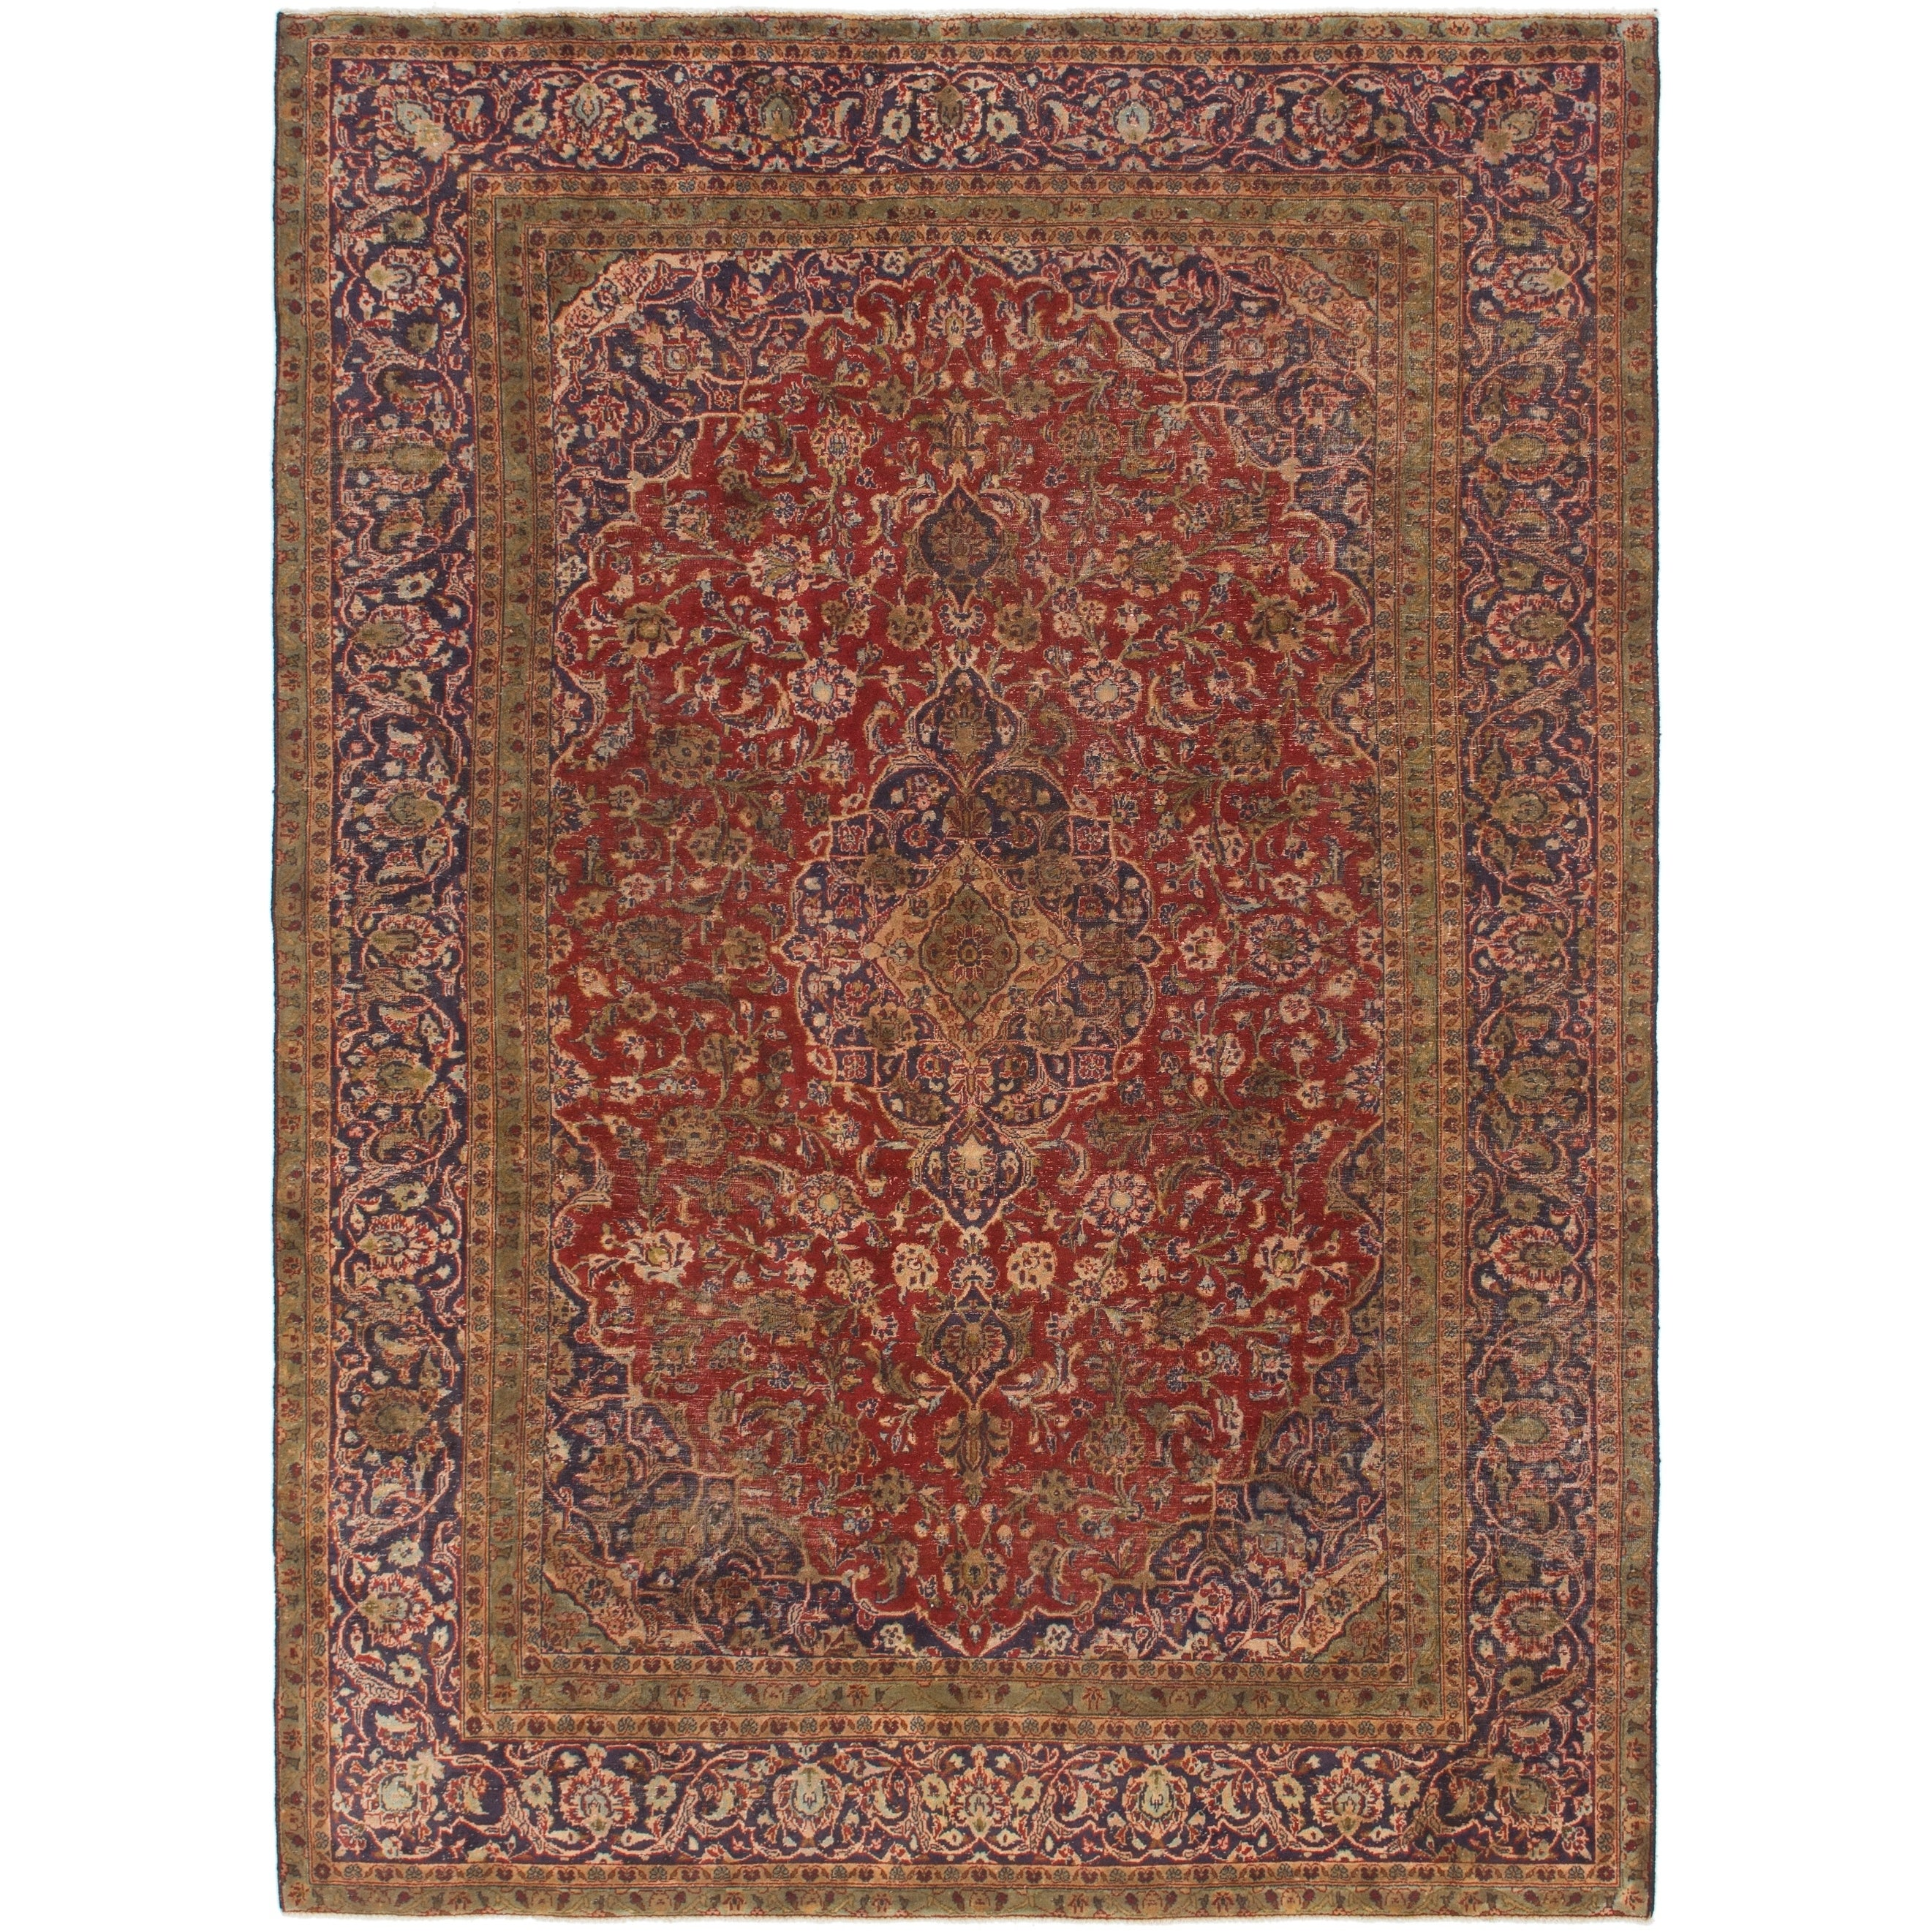 Hand Knotted Kashan Antique Wool Area Rug - 7 8 x 10 9 (Red - 7 8 x 10 9)